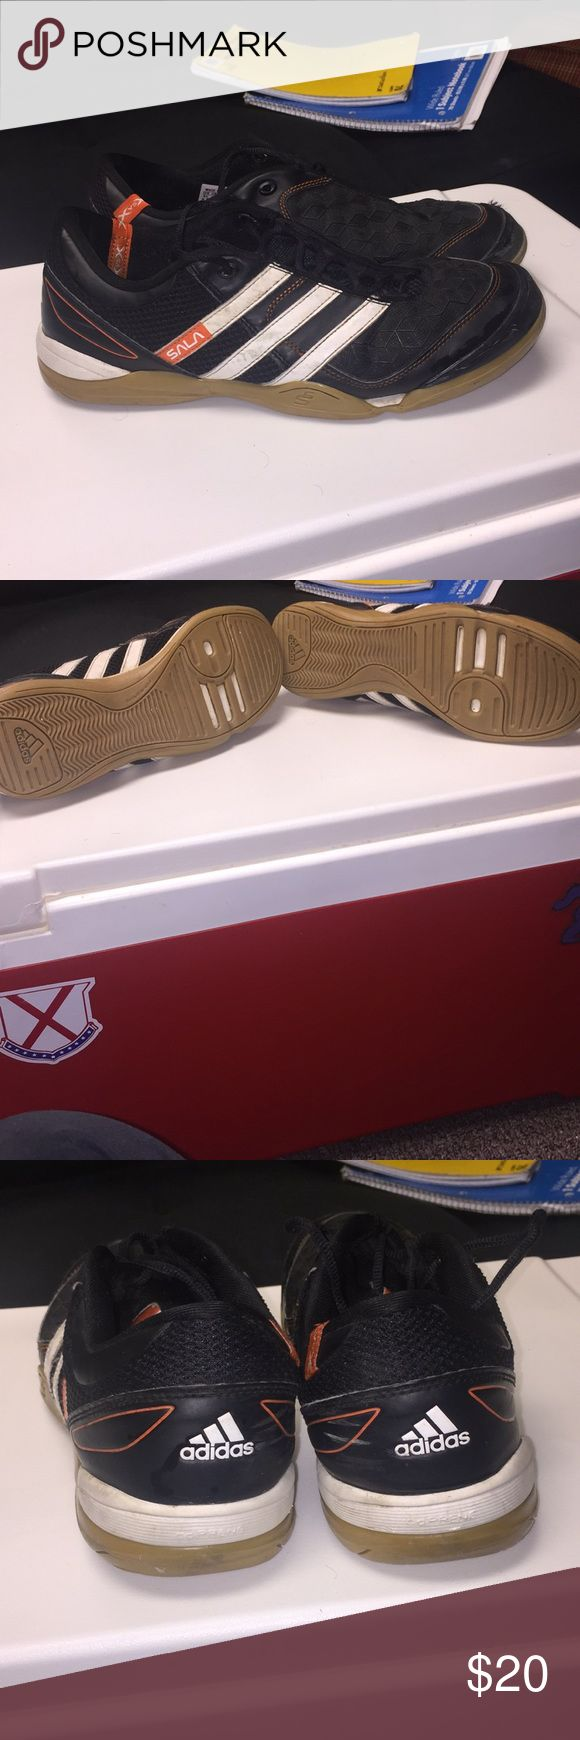 Adidas sala indoor soccer shoes Good condition. 8/10 adidas Shoes Athletic Shoes